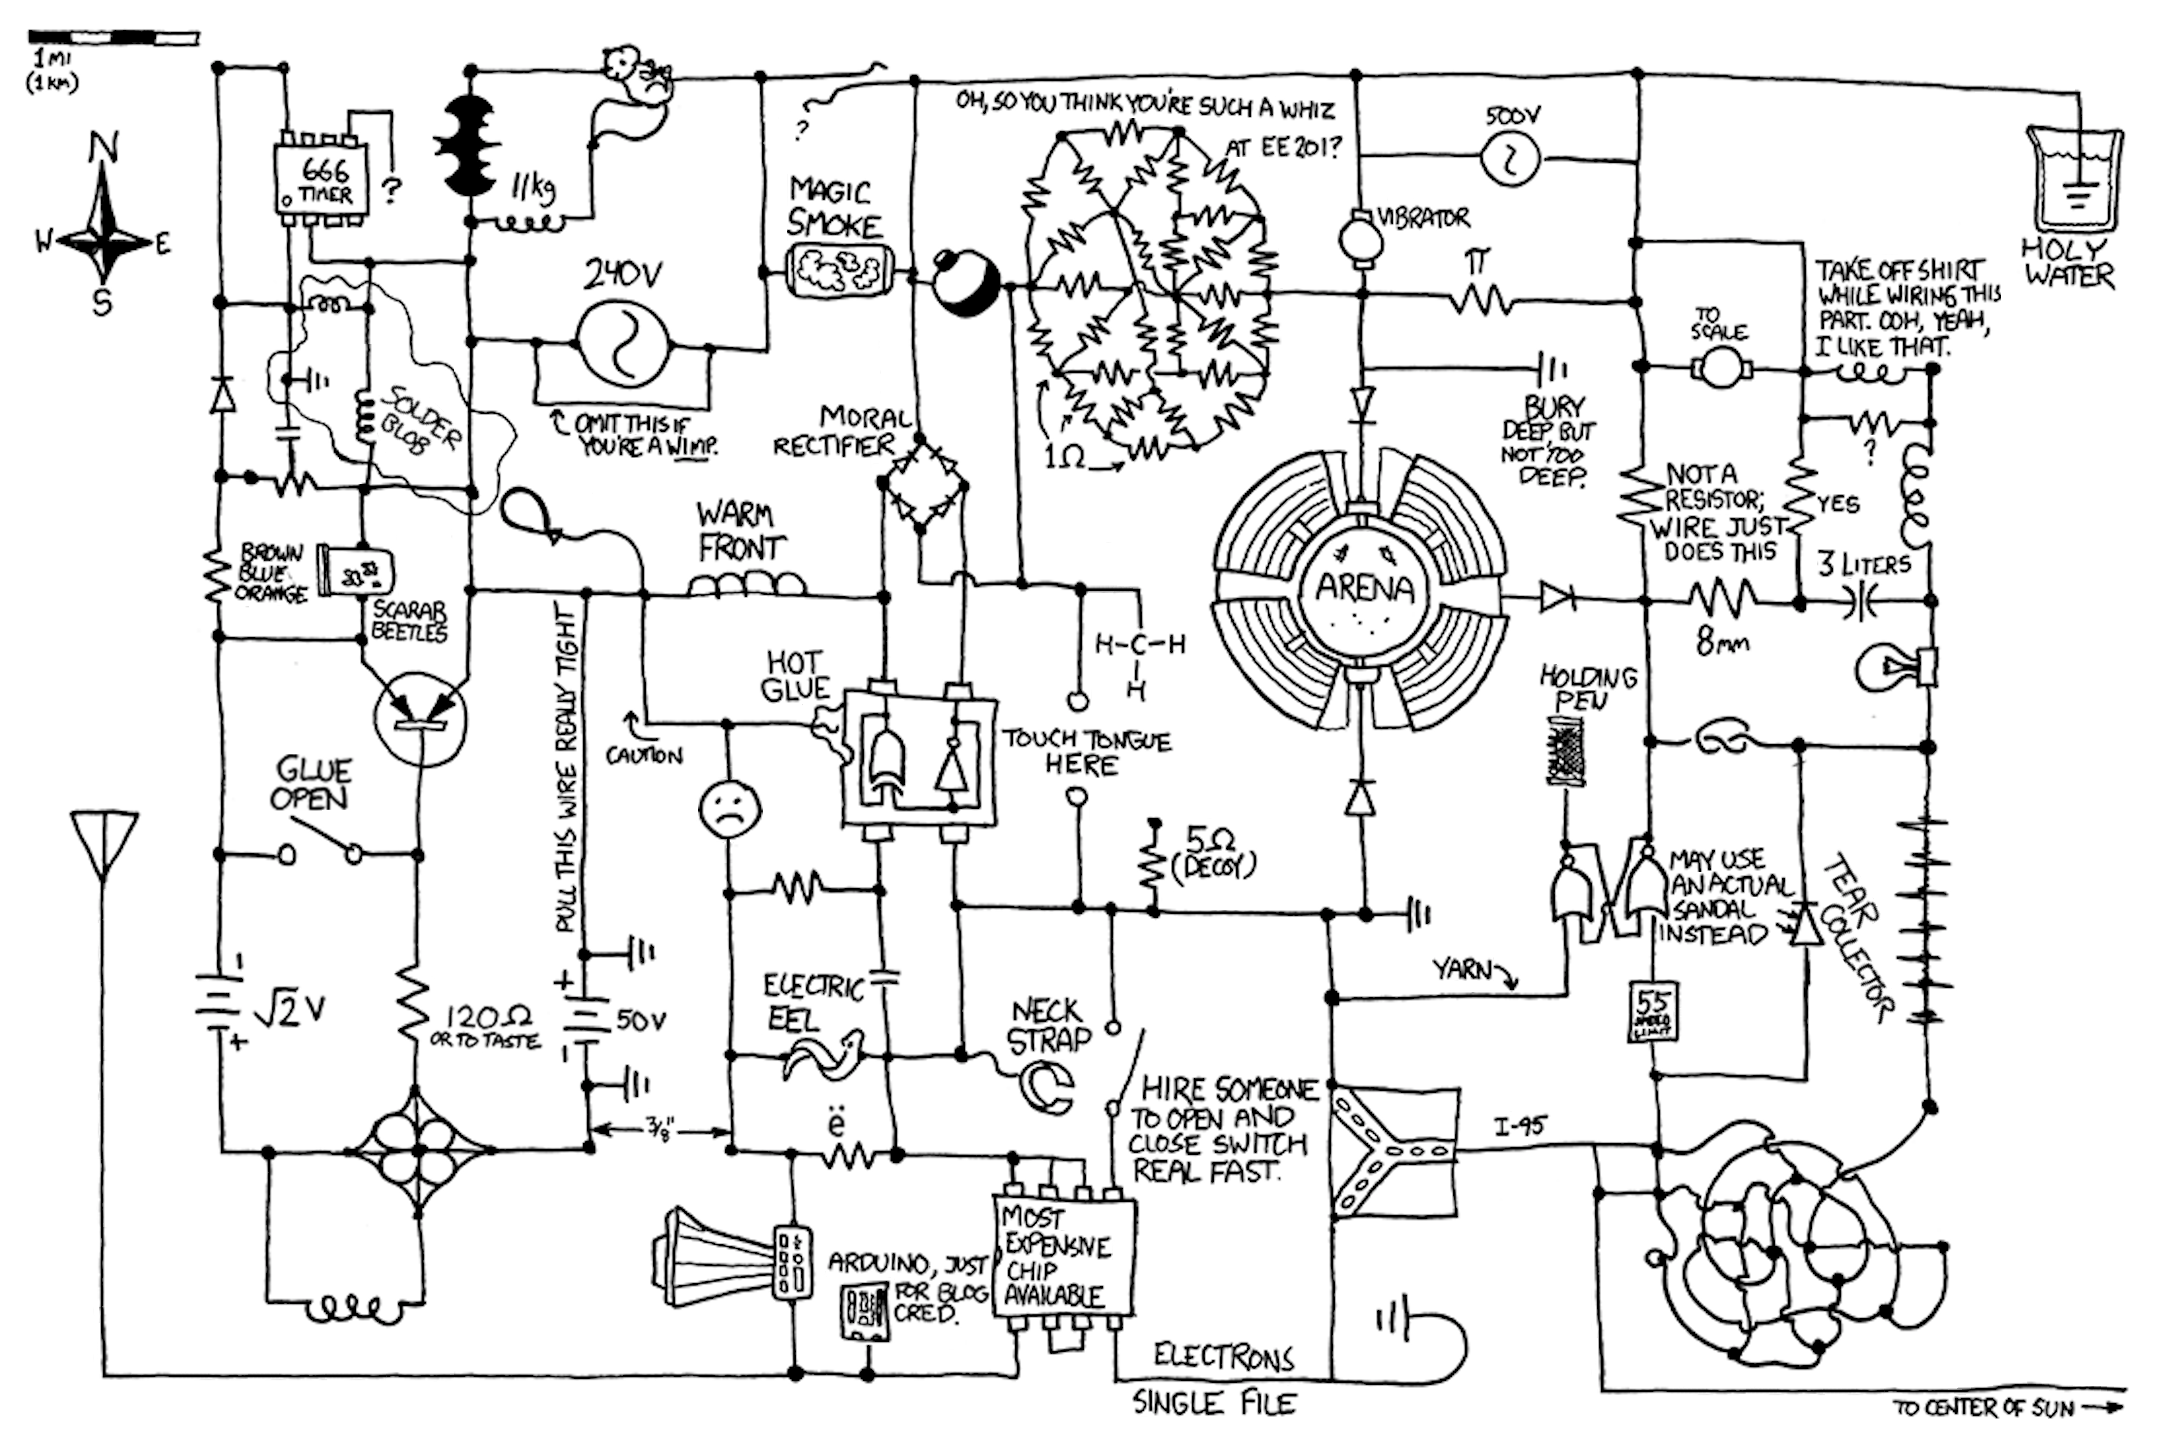 [WRG-0704] Circuit Diagram Joke